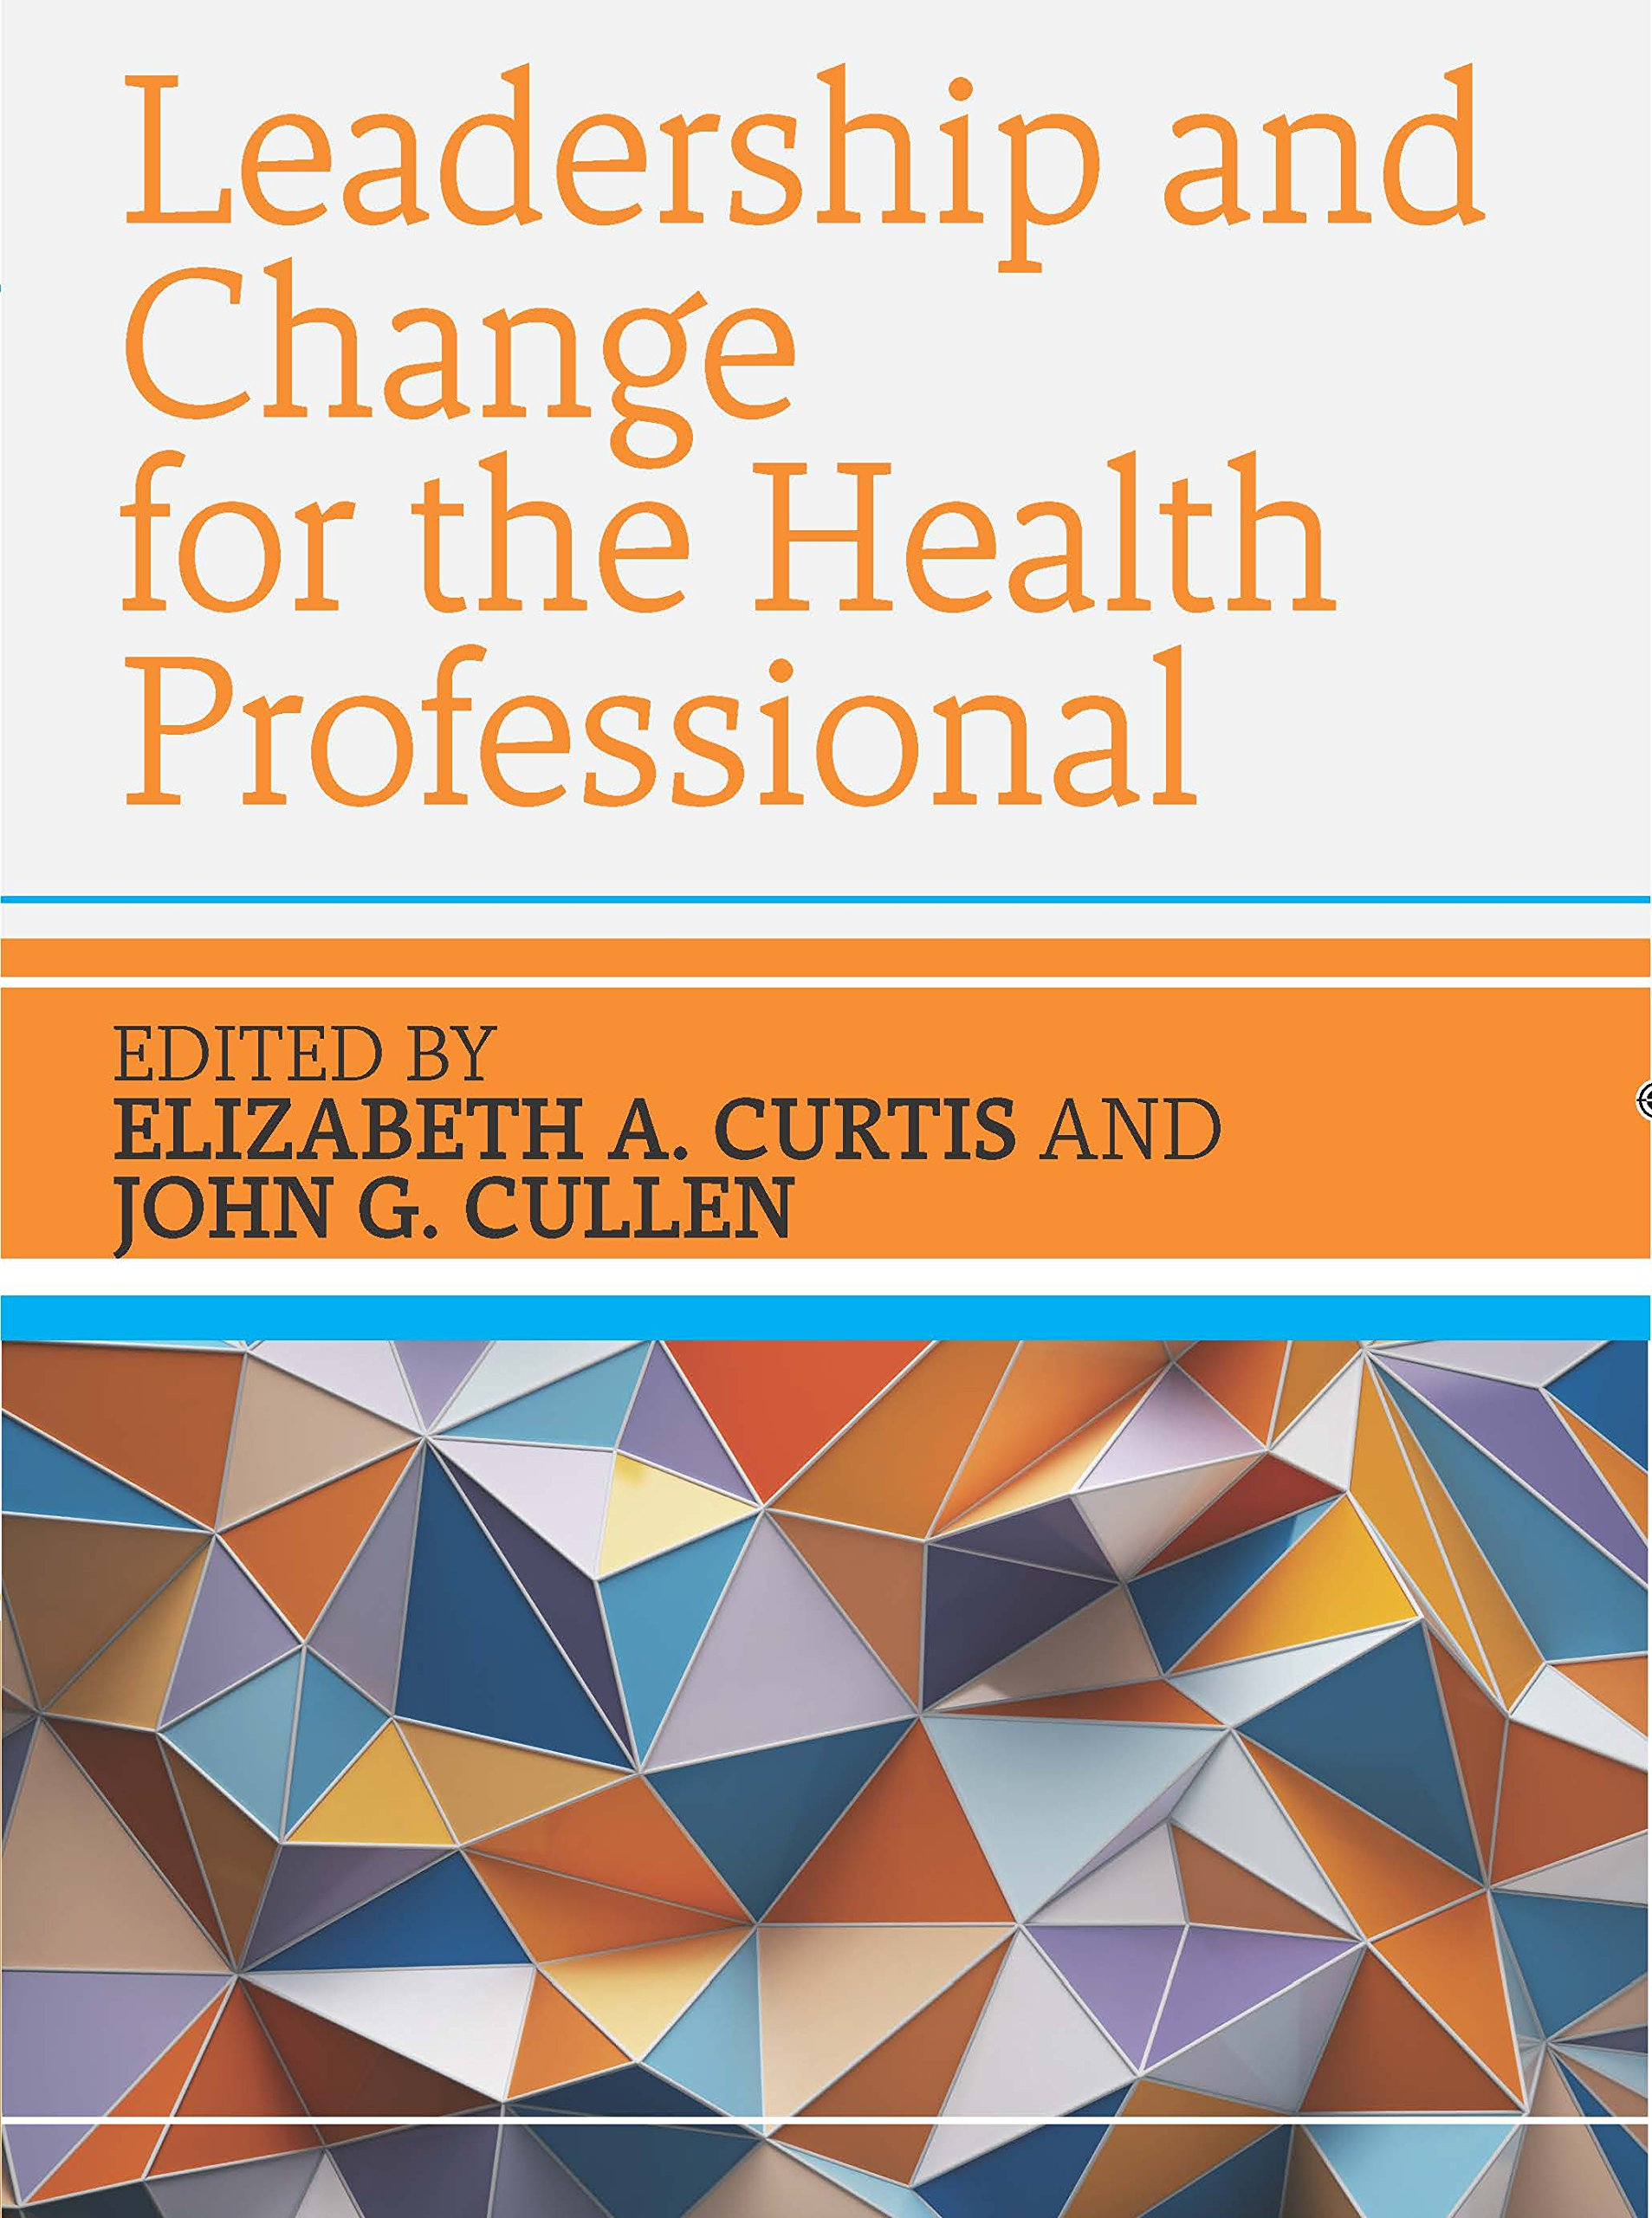 Leadership and Change for the Health Professional